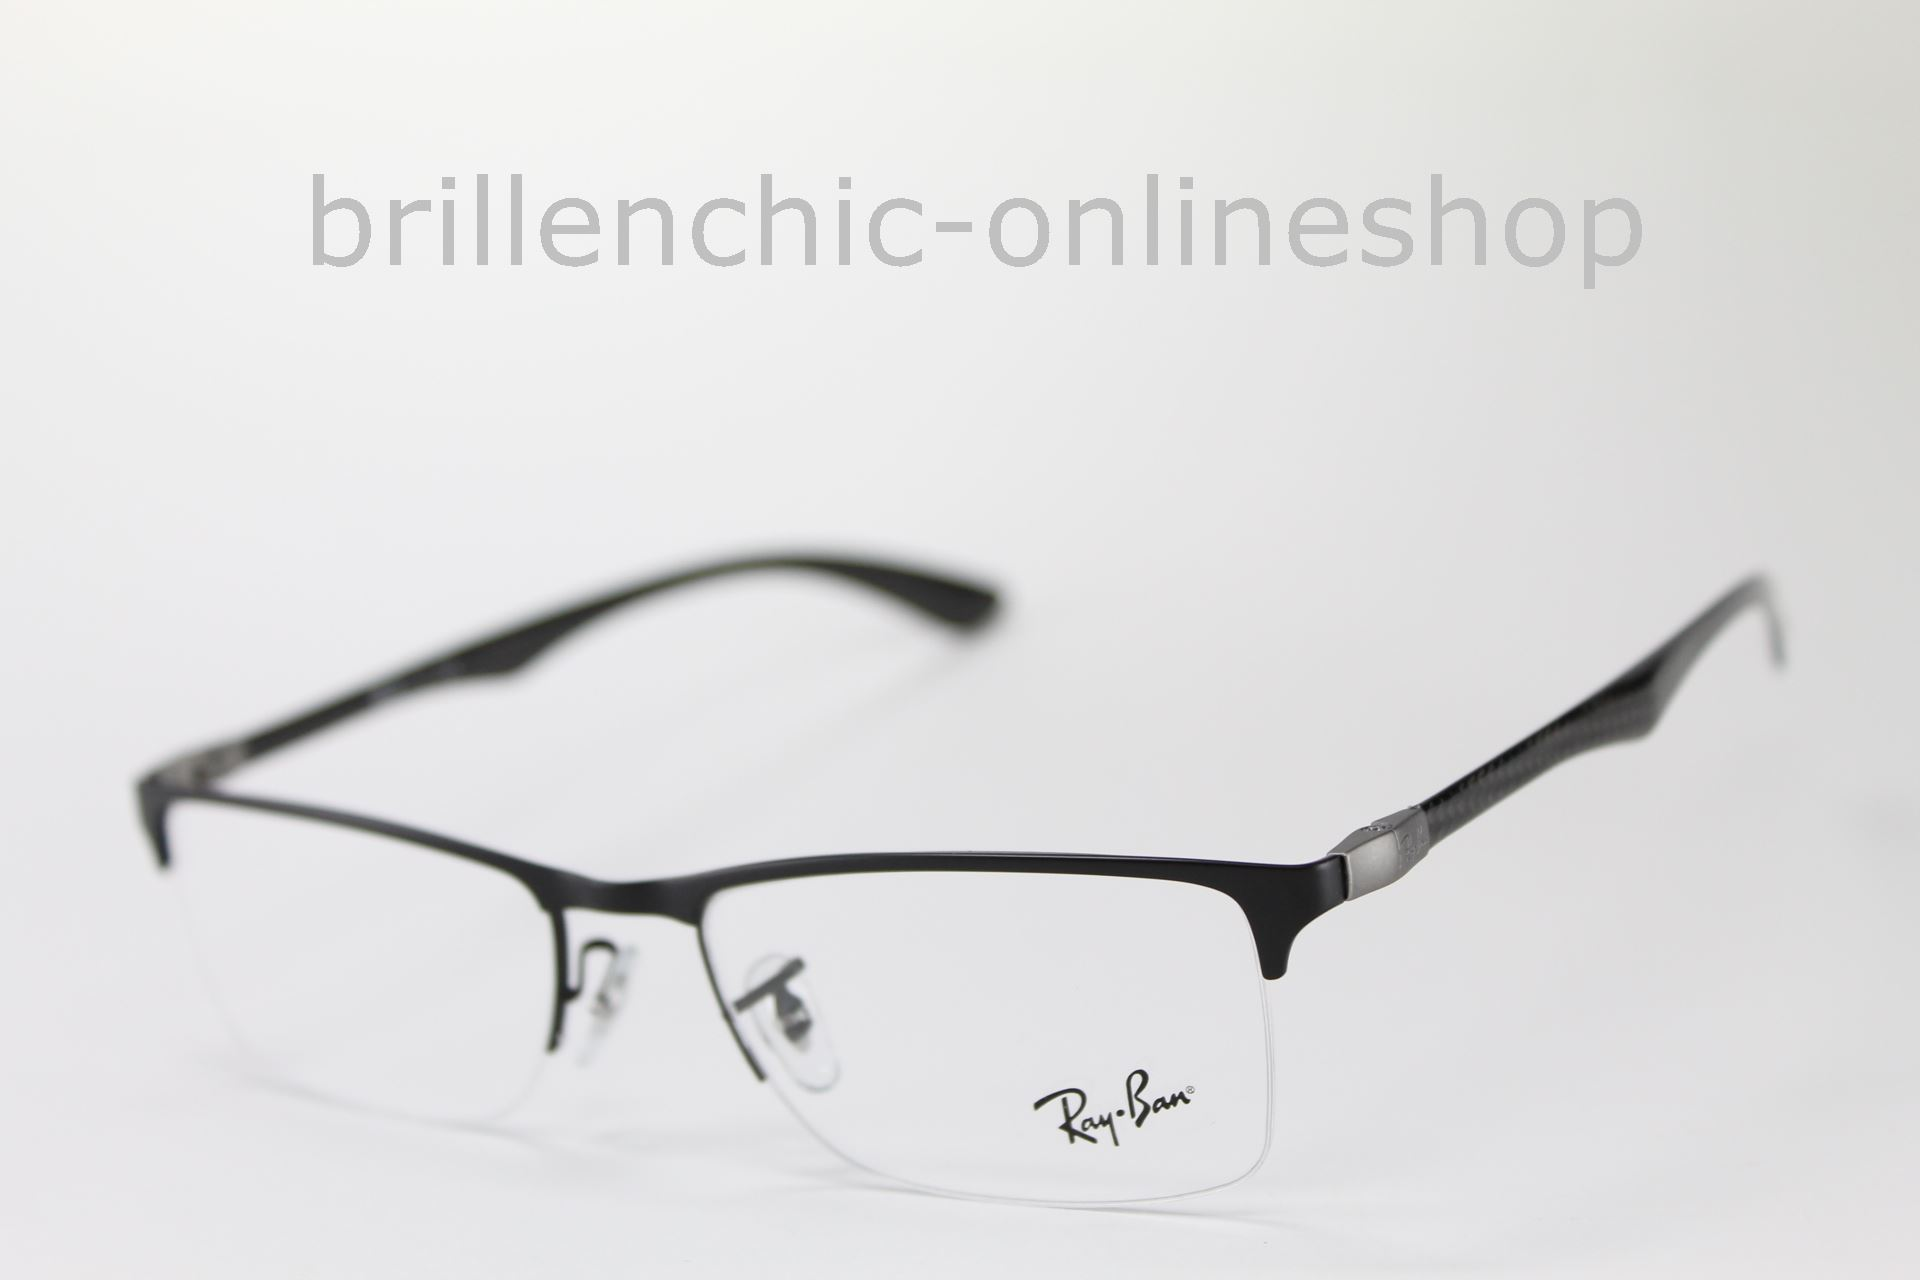 1fdd41a8767 Brillenchic-onlineshop in Berlin - Ray Ban RB 8413 2503 CARBON